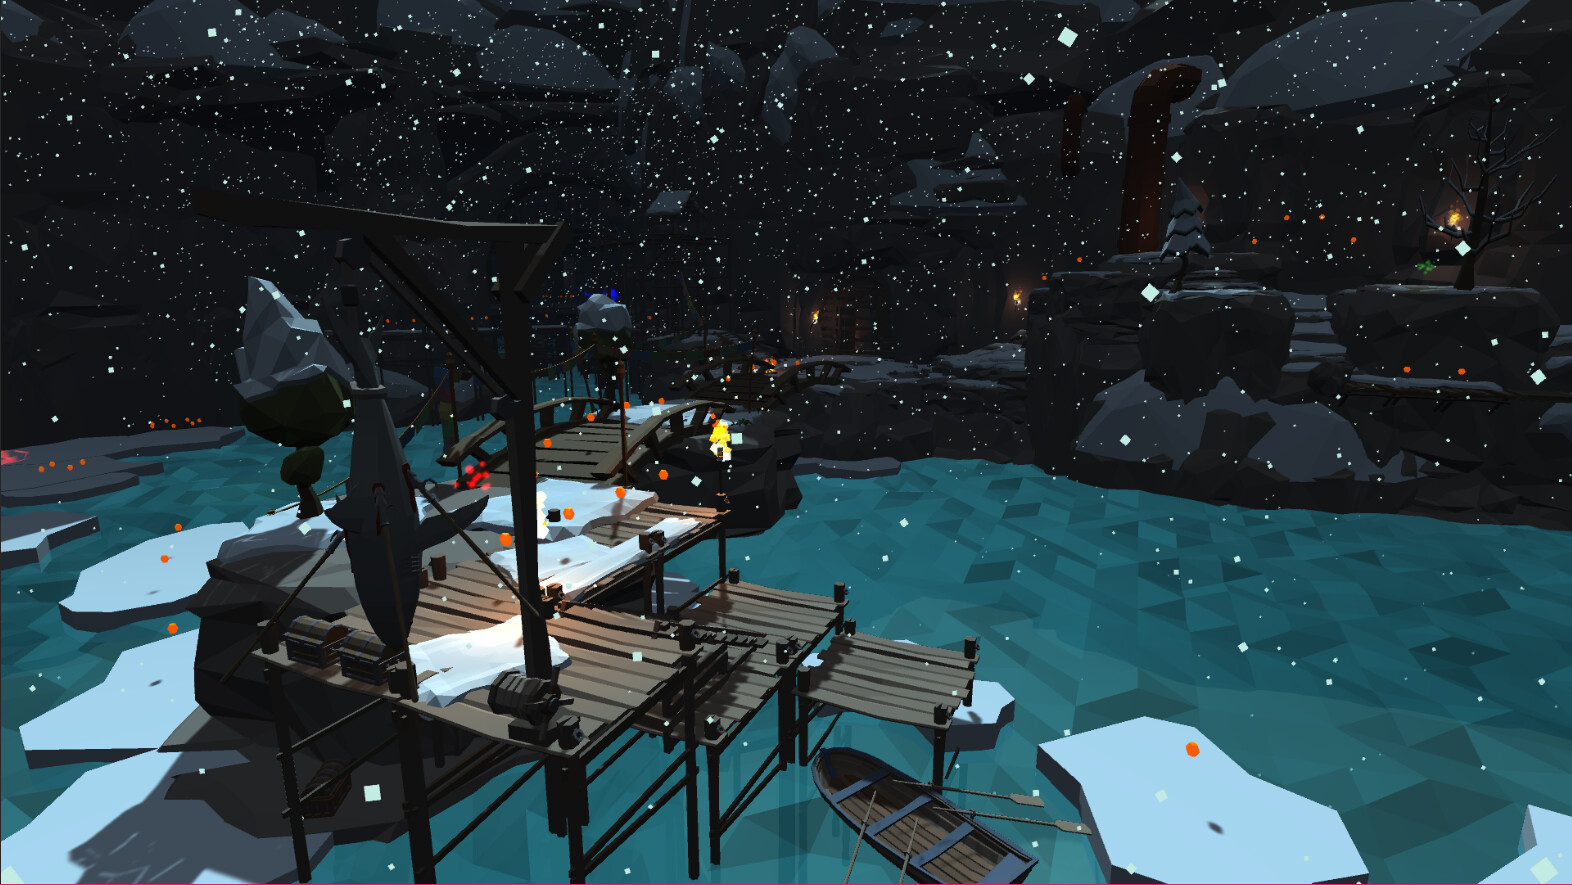 The docks in the opening section of the level where the player spawns. Once the player has recovered the crystal cores they return here to complete the game.